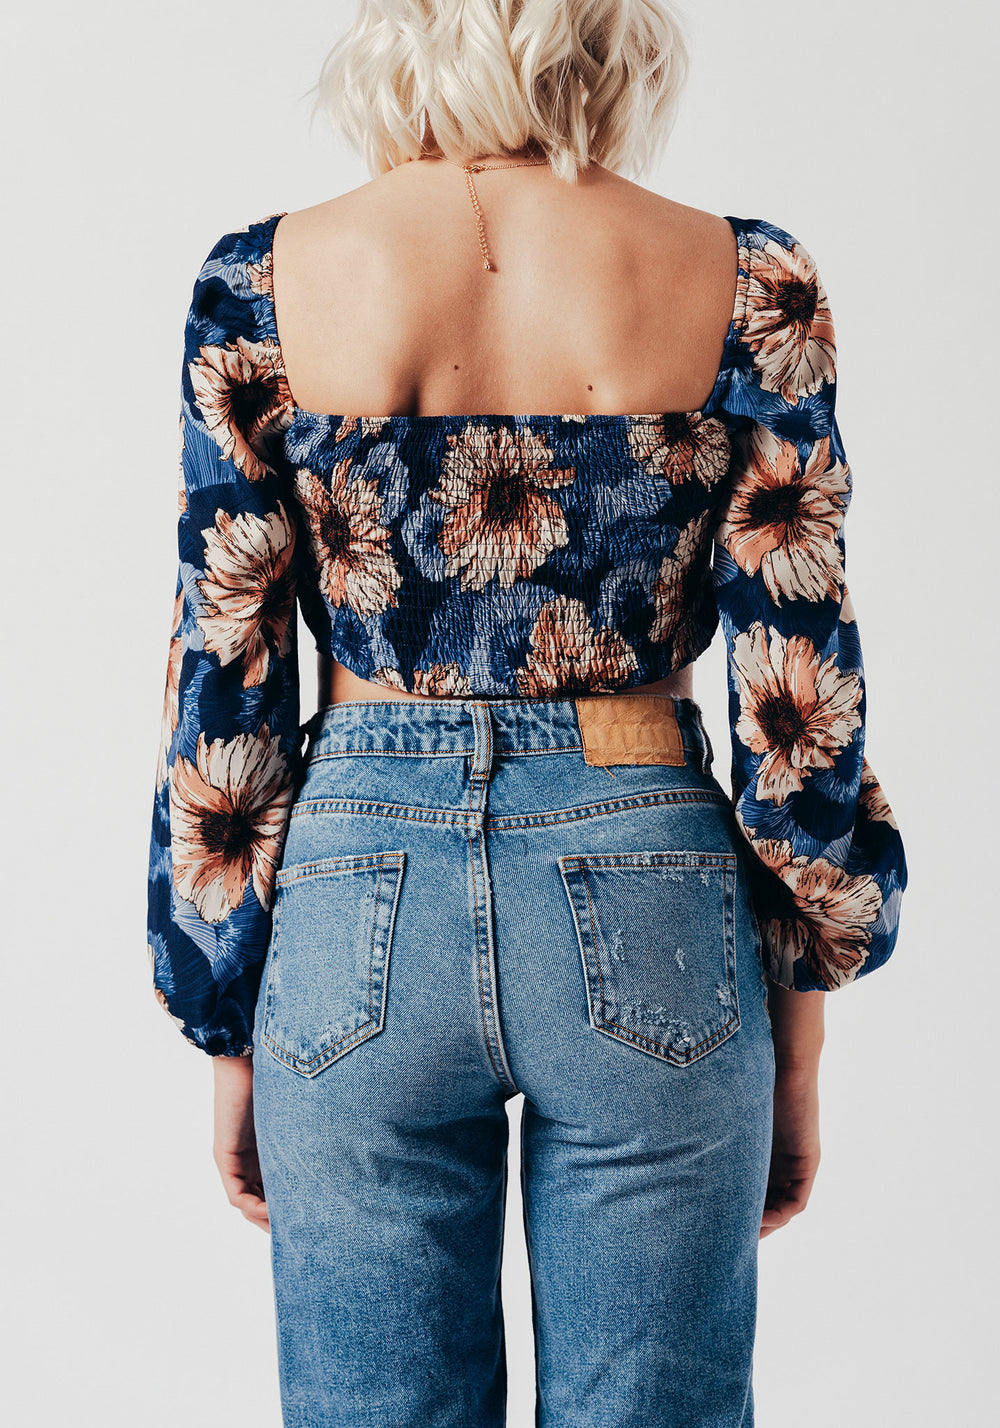 Buttoned crop top with long sleeves in blue large floral